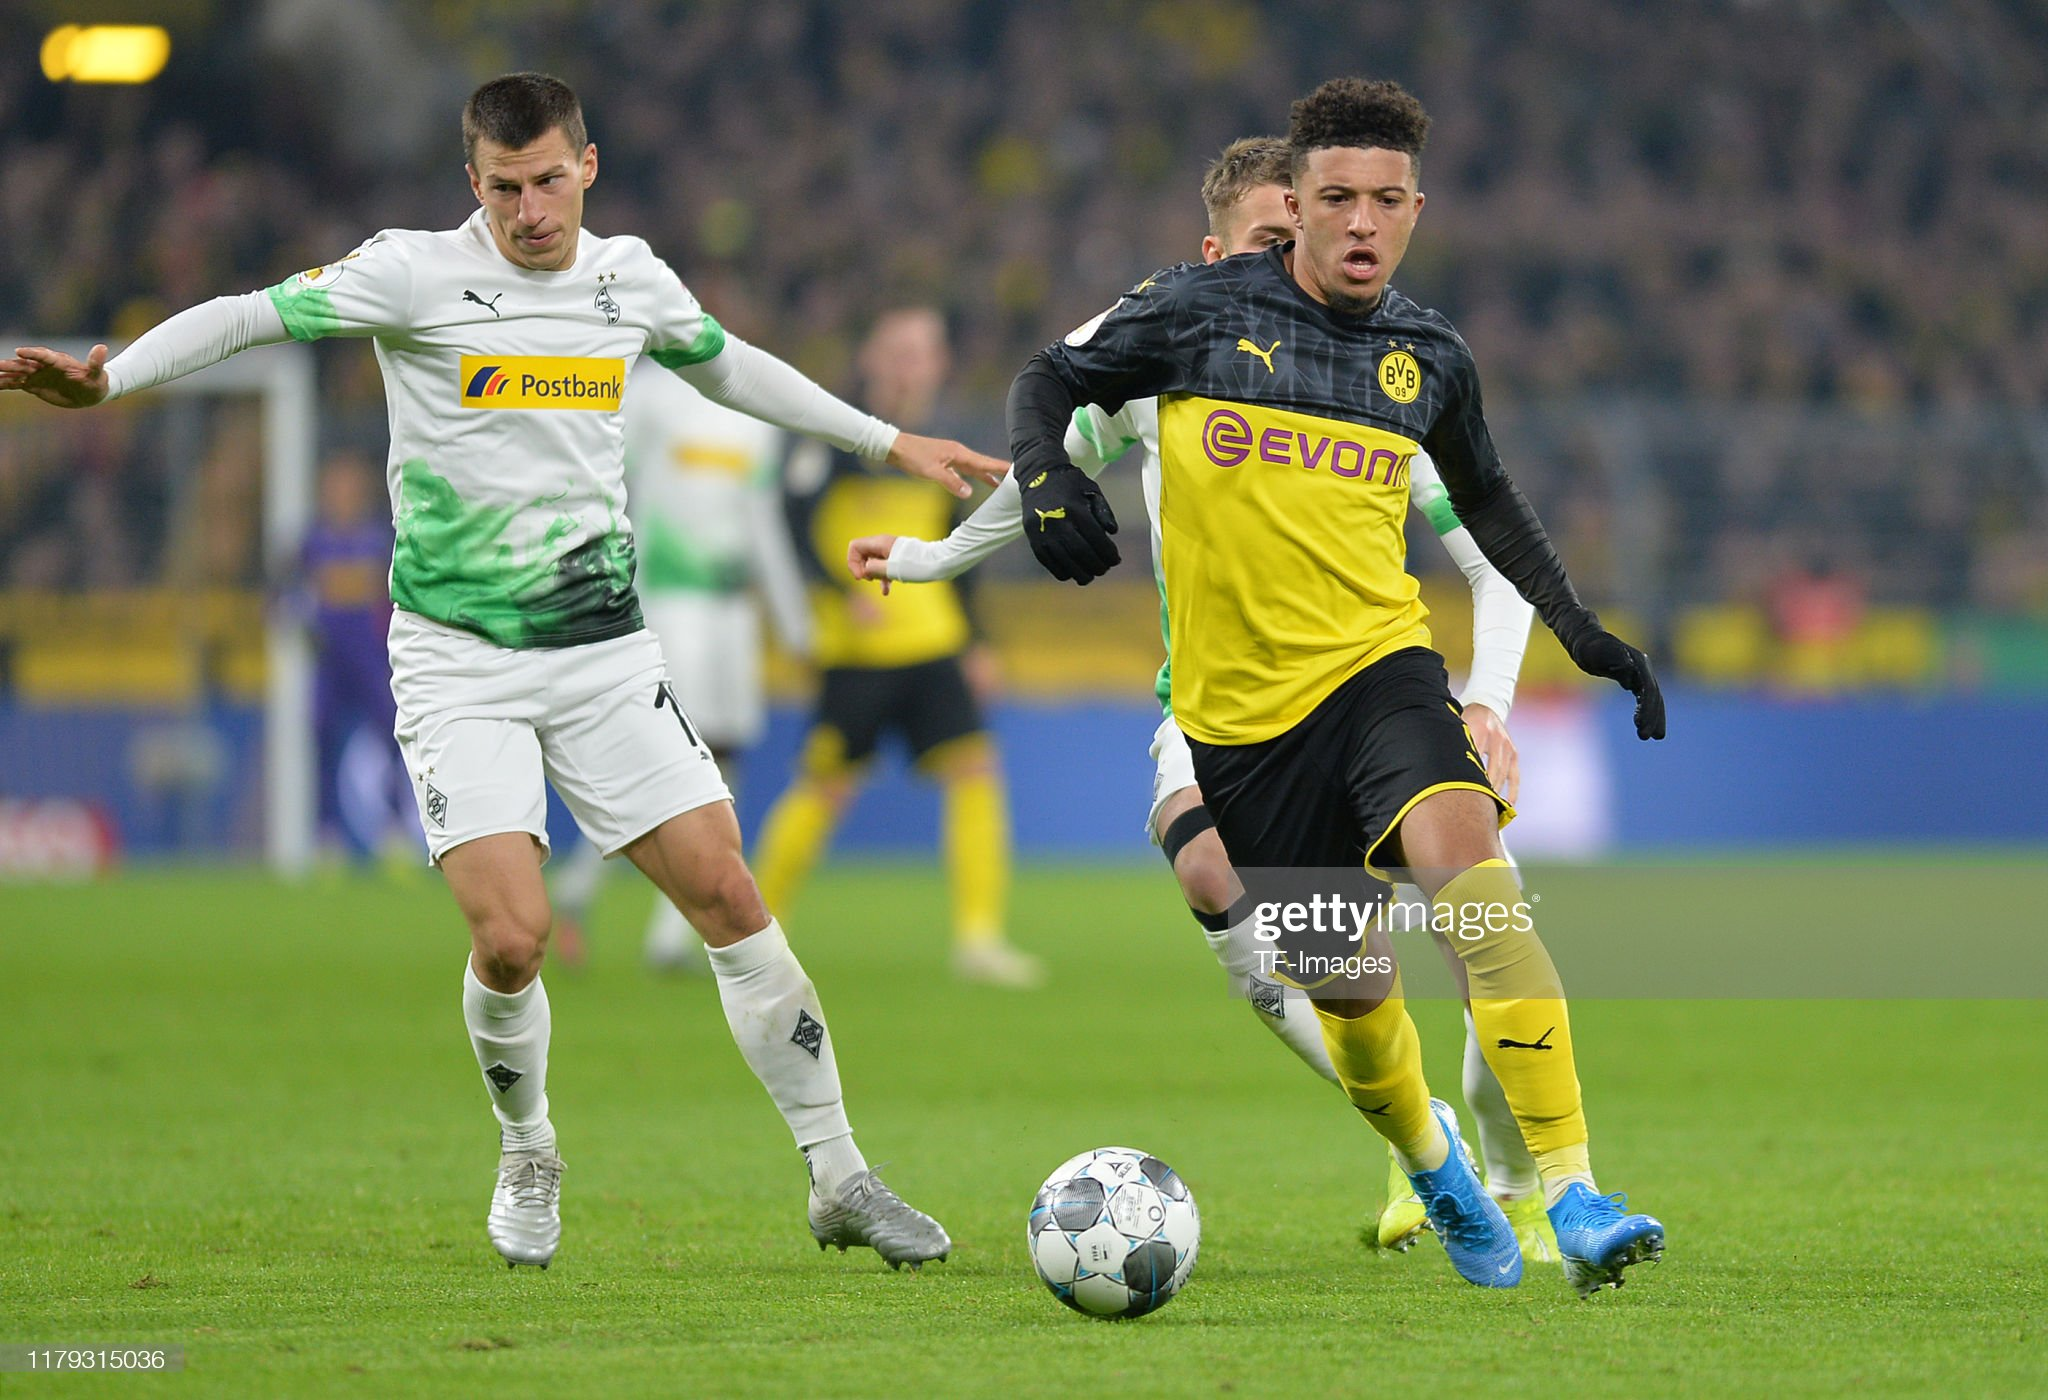 Monchengladbach v Dortmund Preview, prediction and odds